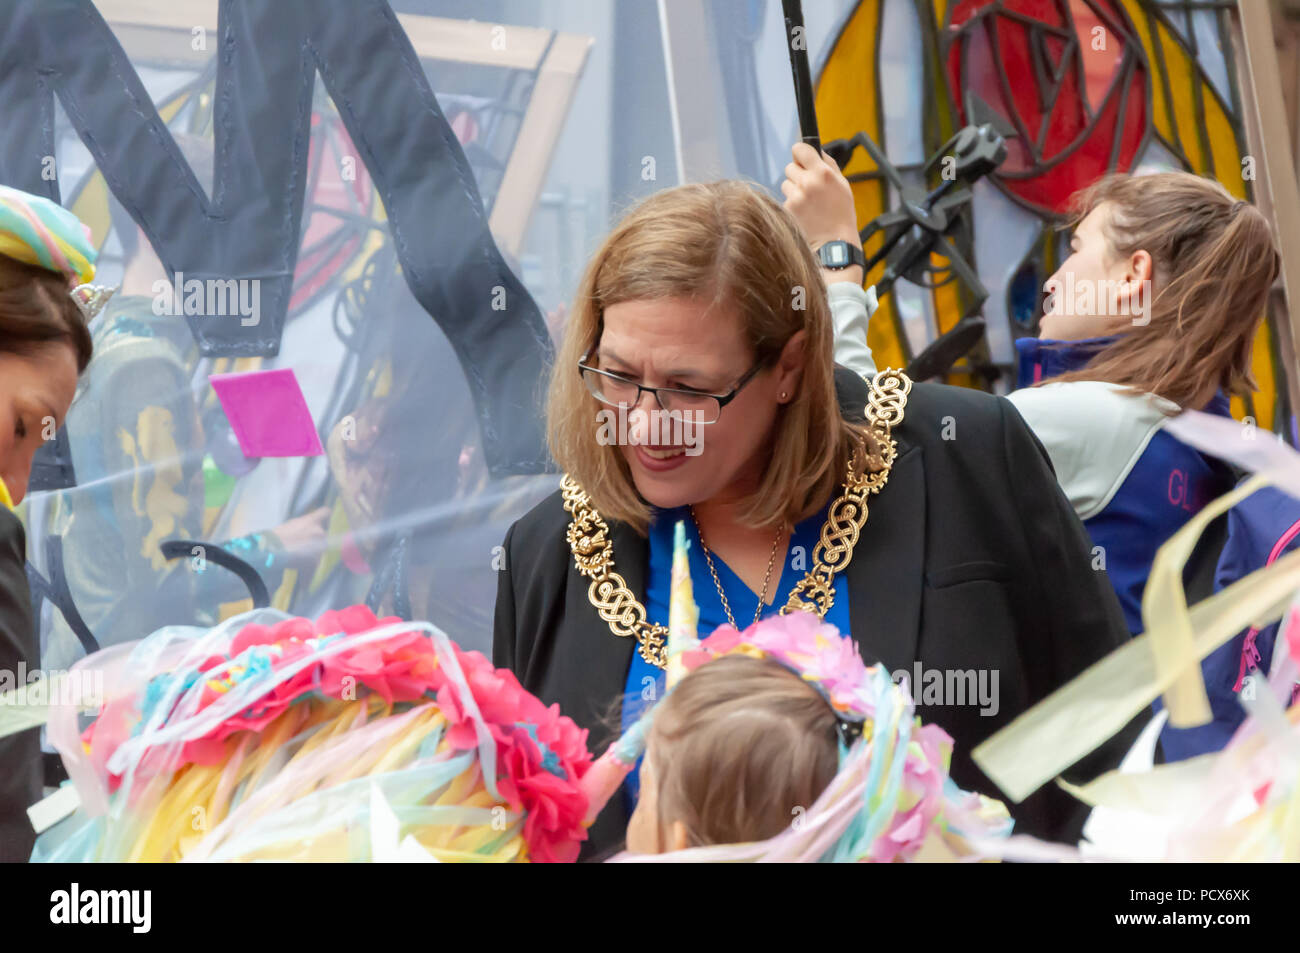 Glasgow, Scotland, UK. 4th August, 2018. The Lord Provost Of Glasgow Eva Bolander meets the performers of the Festival 2018 Carnival Procession before it travels through the streets of the city. Festival 2018 is the cultural programme of the Glasgow 2018 European Championships. The carnival includes local and international  musicians, dancers and street performers. The procession started at George Square and travelled through South Frederick St, Ingram St, Hutcheson St, Wilson St, Bell St, High St, Saltmarket and finished at GO LIVE in Glasgow Green. Credit: Skully/Alamy Live News - Stock Image